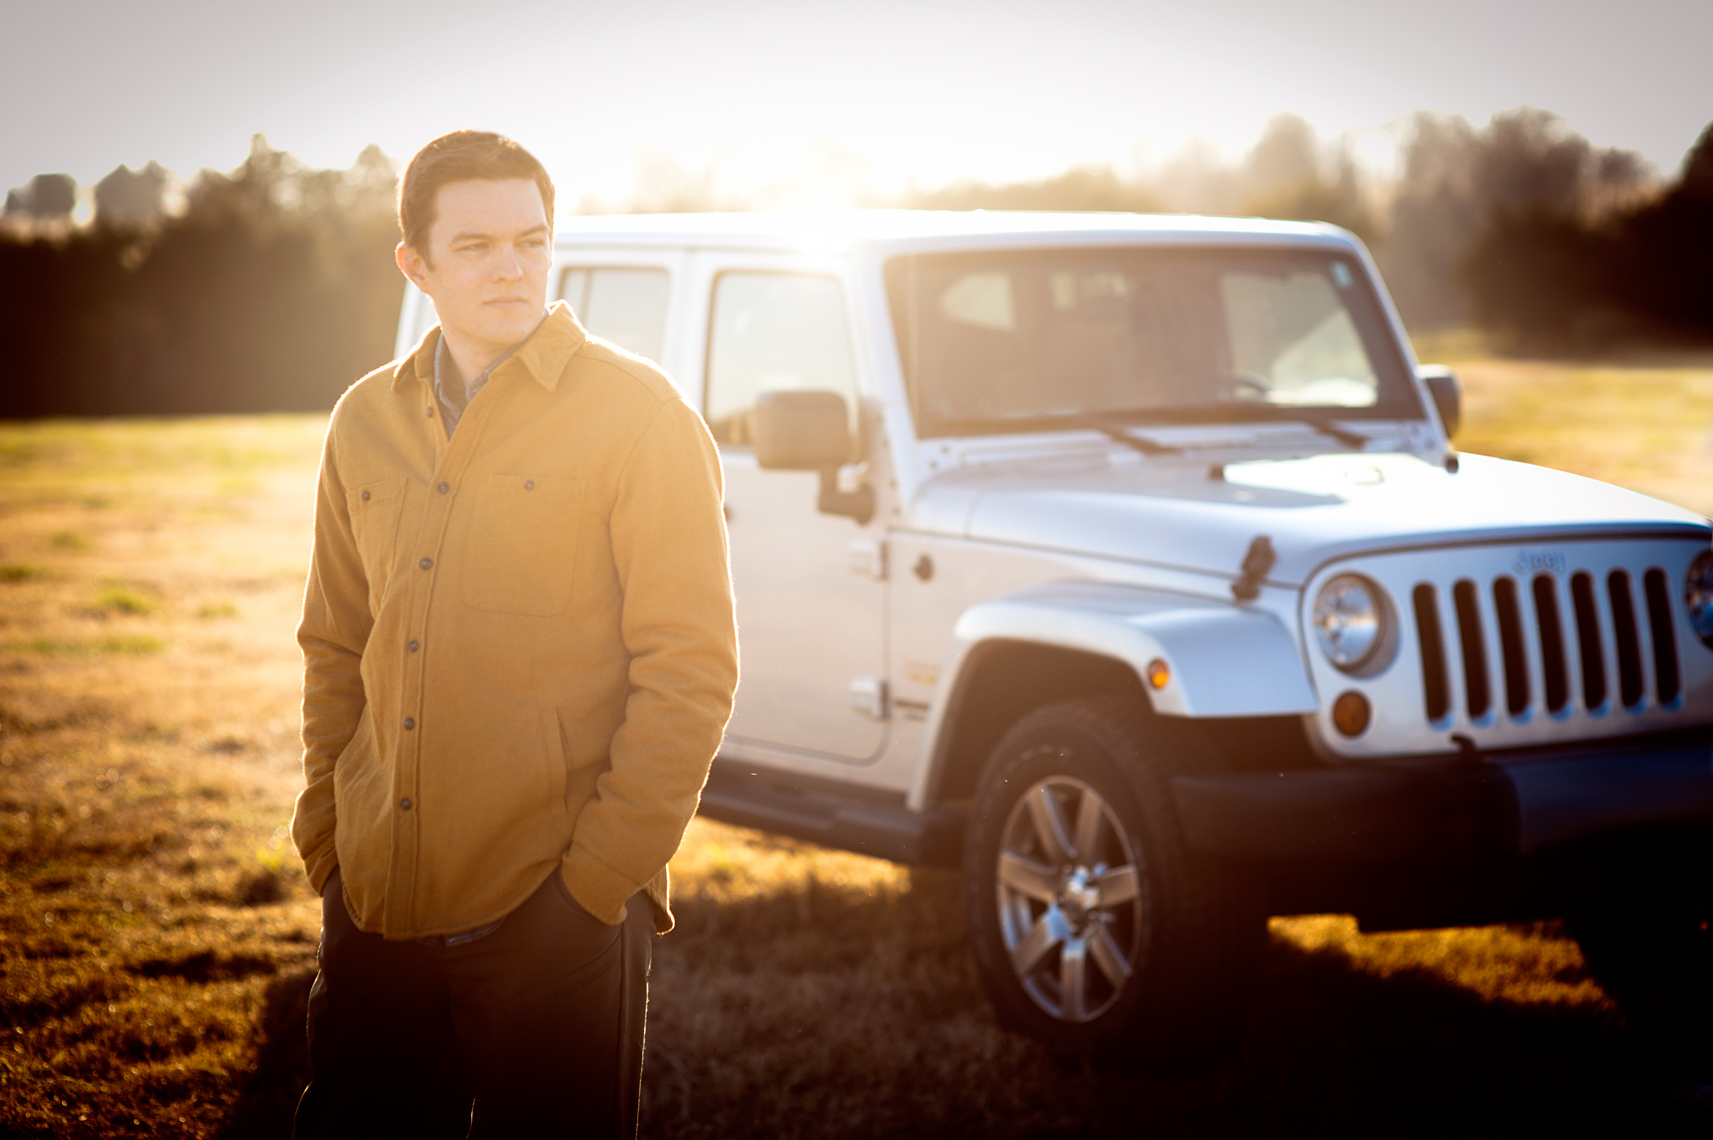 ©Robb Scharetg - Matt w/Jeep , washington dc commercial photographer, washington dc commercial photography, washington dc lifestyle photographer, washington dc lifestyle photography